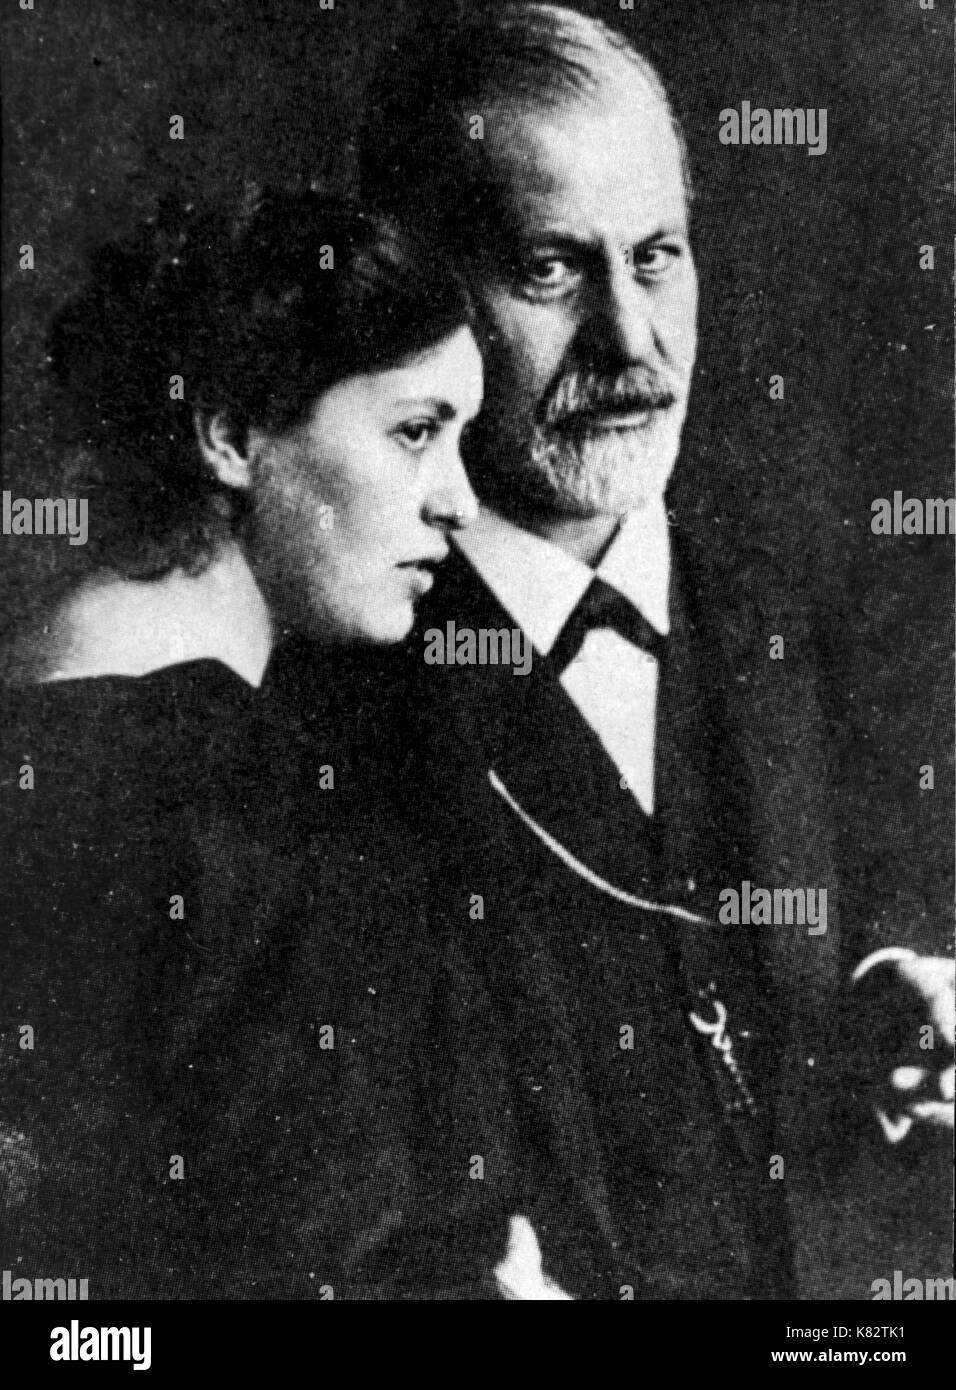 sigmund freud with his daughter sophie, 1910 - Stock Image